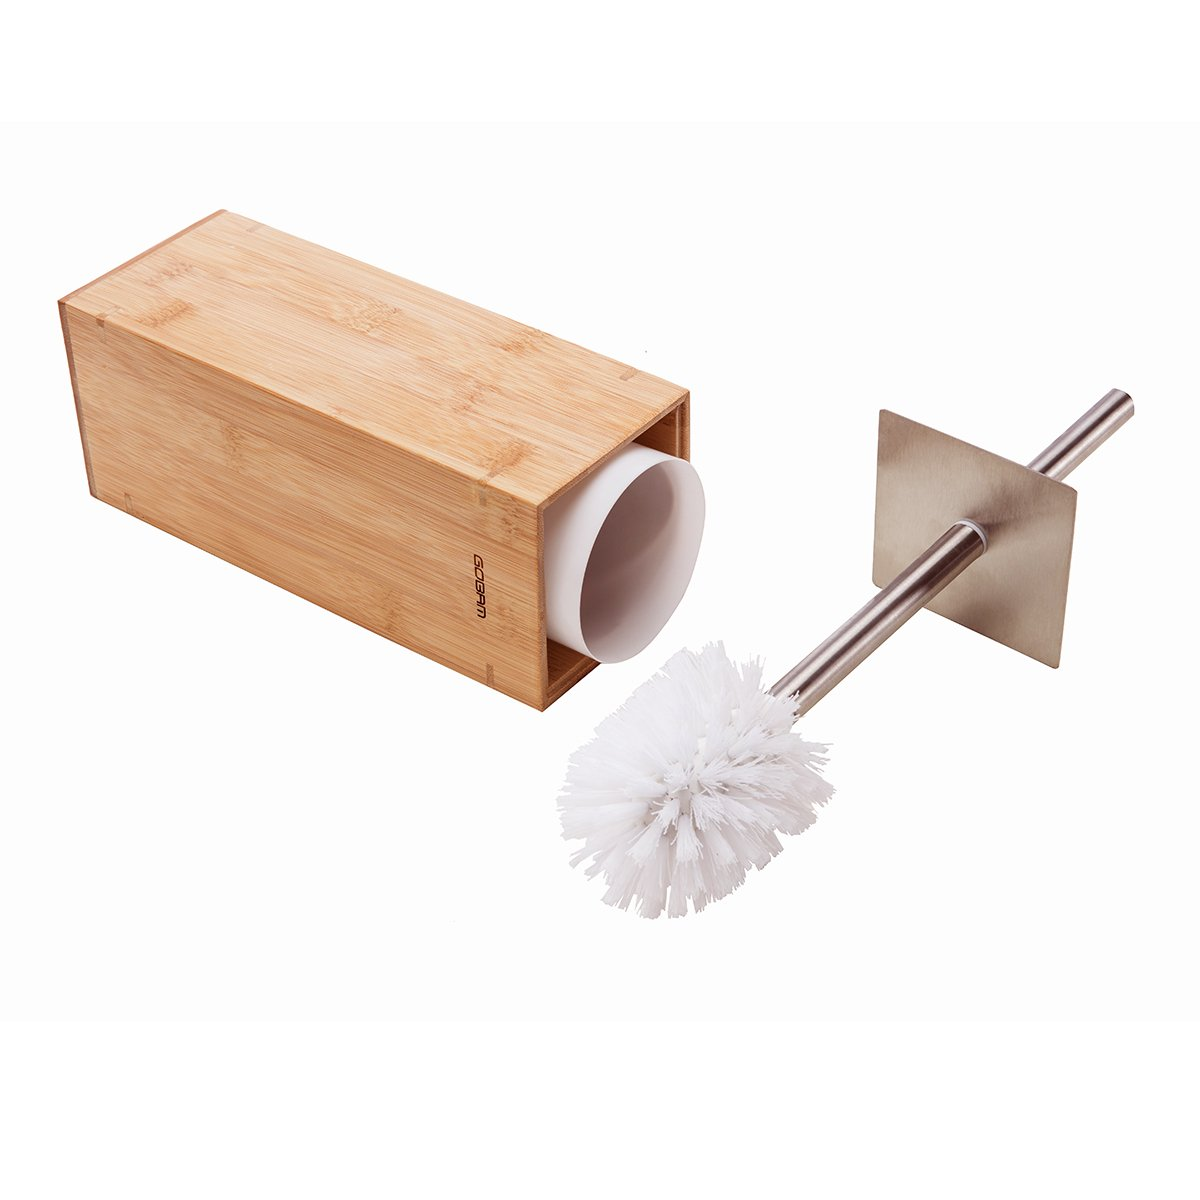 Gobam Toilet Brush with Holder Stainless Steel Handle and Lid for All Toilet Types with Sanitary Storage,Square Bamboo